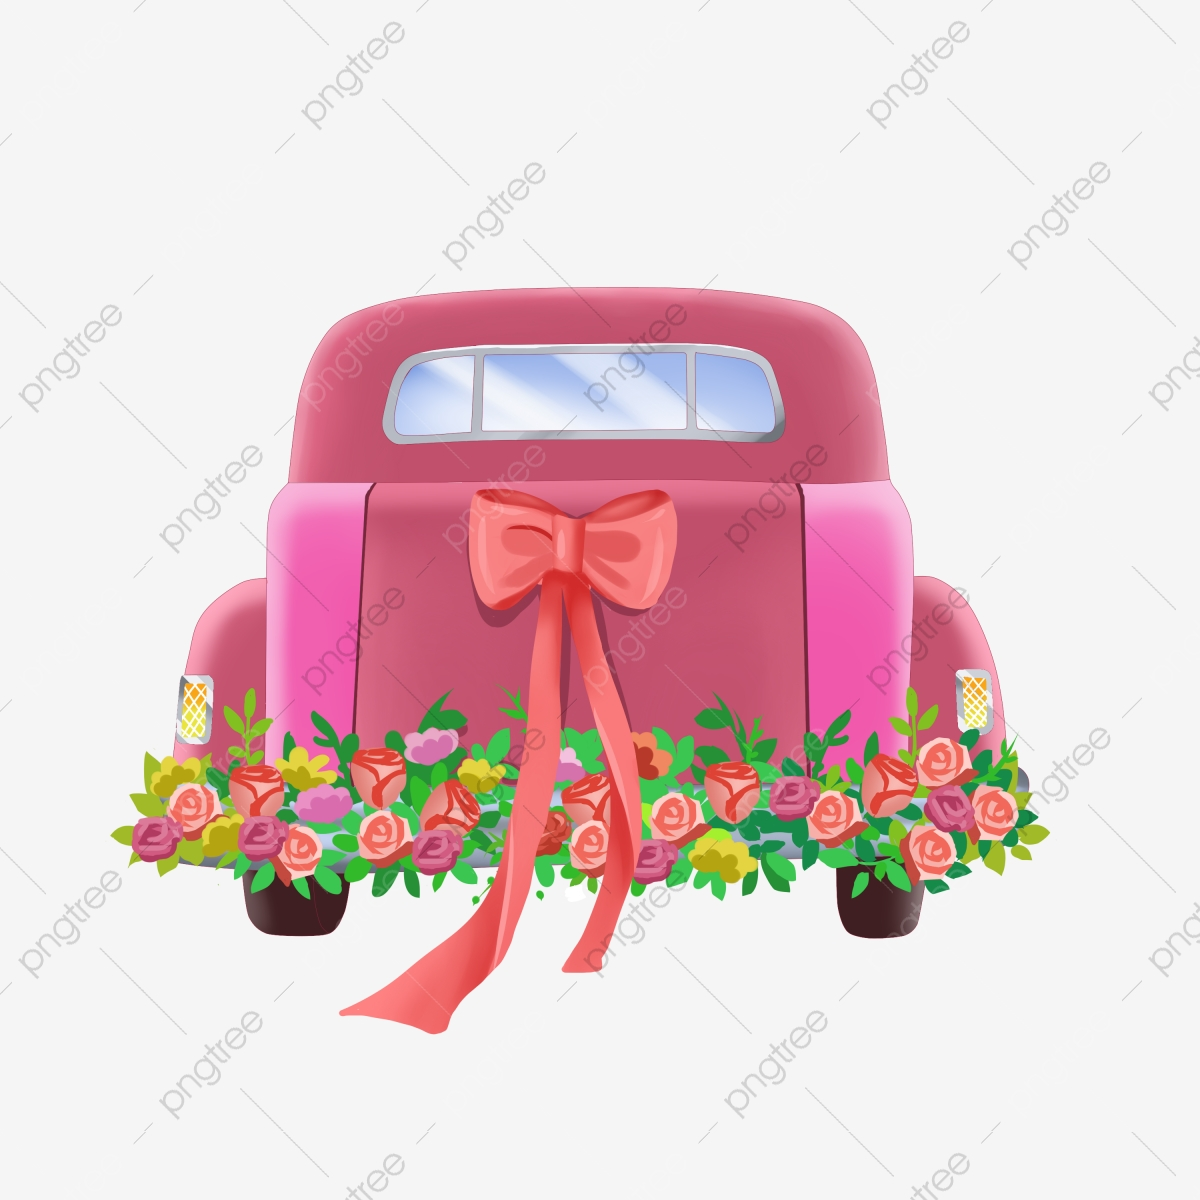 Wedding Car Png, Vector, PSD, and Clipart With Transparent ...